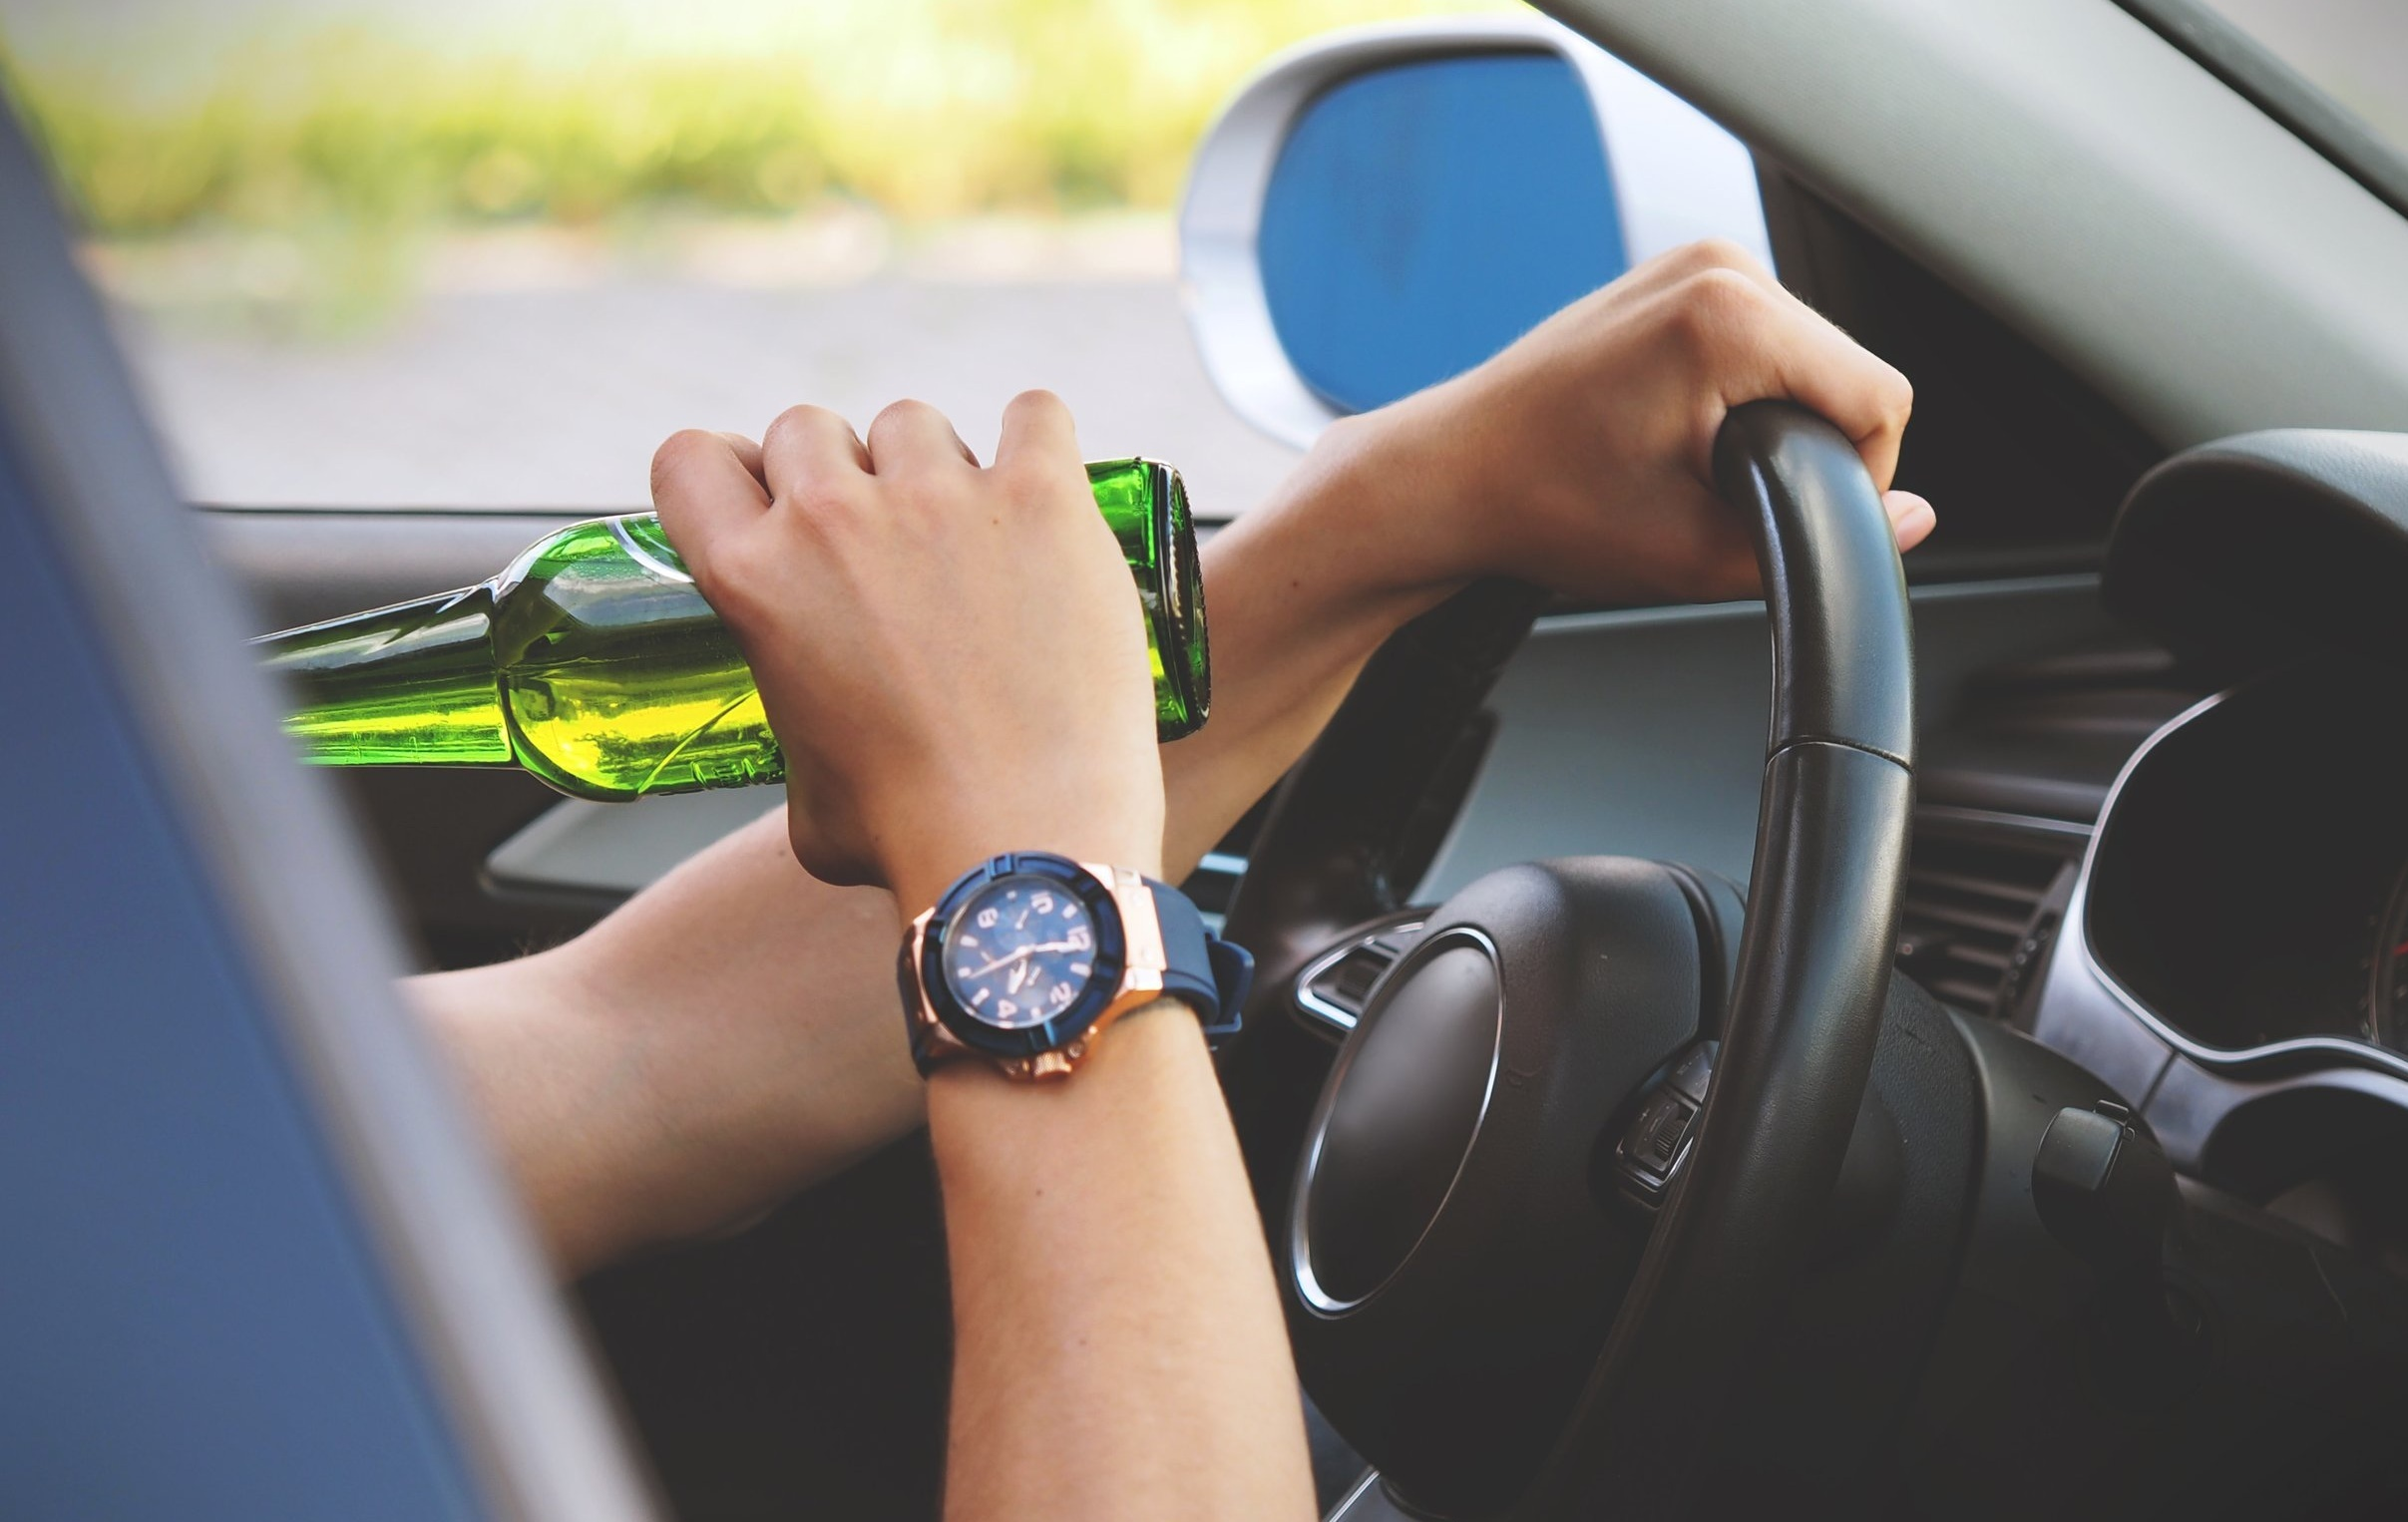 Photograph: Driver behind automobile steering wheel drinking a bottle of beer.